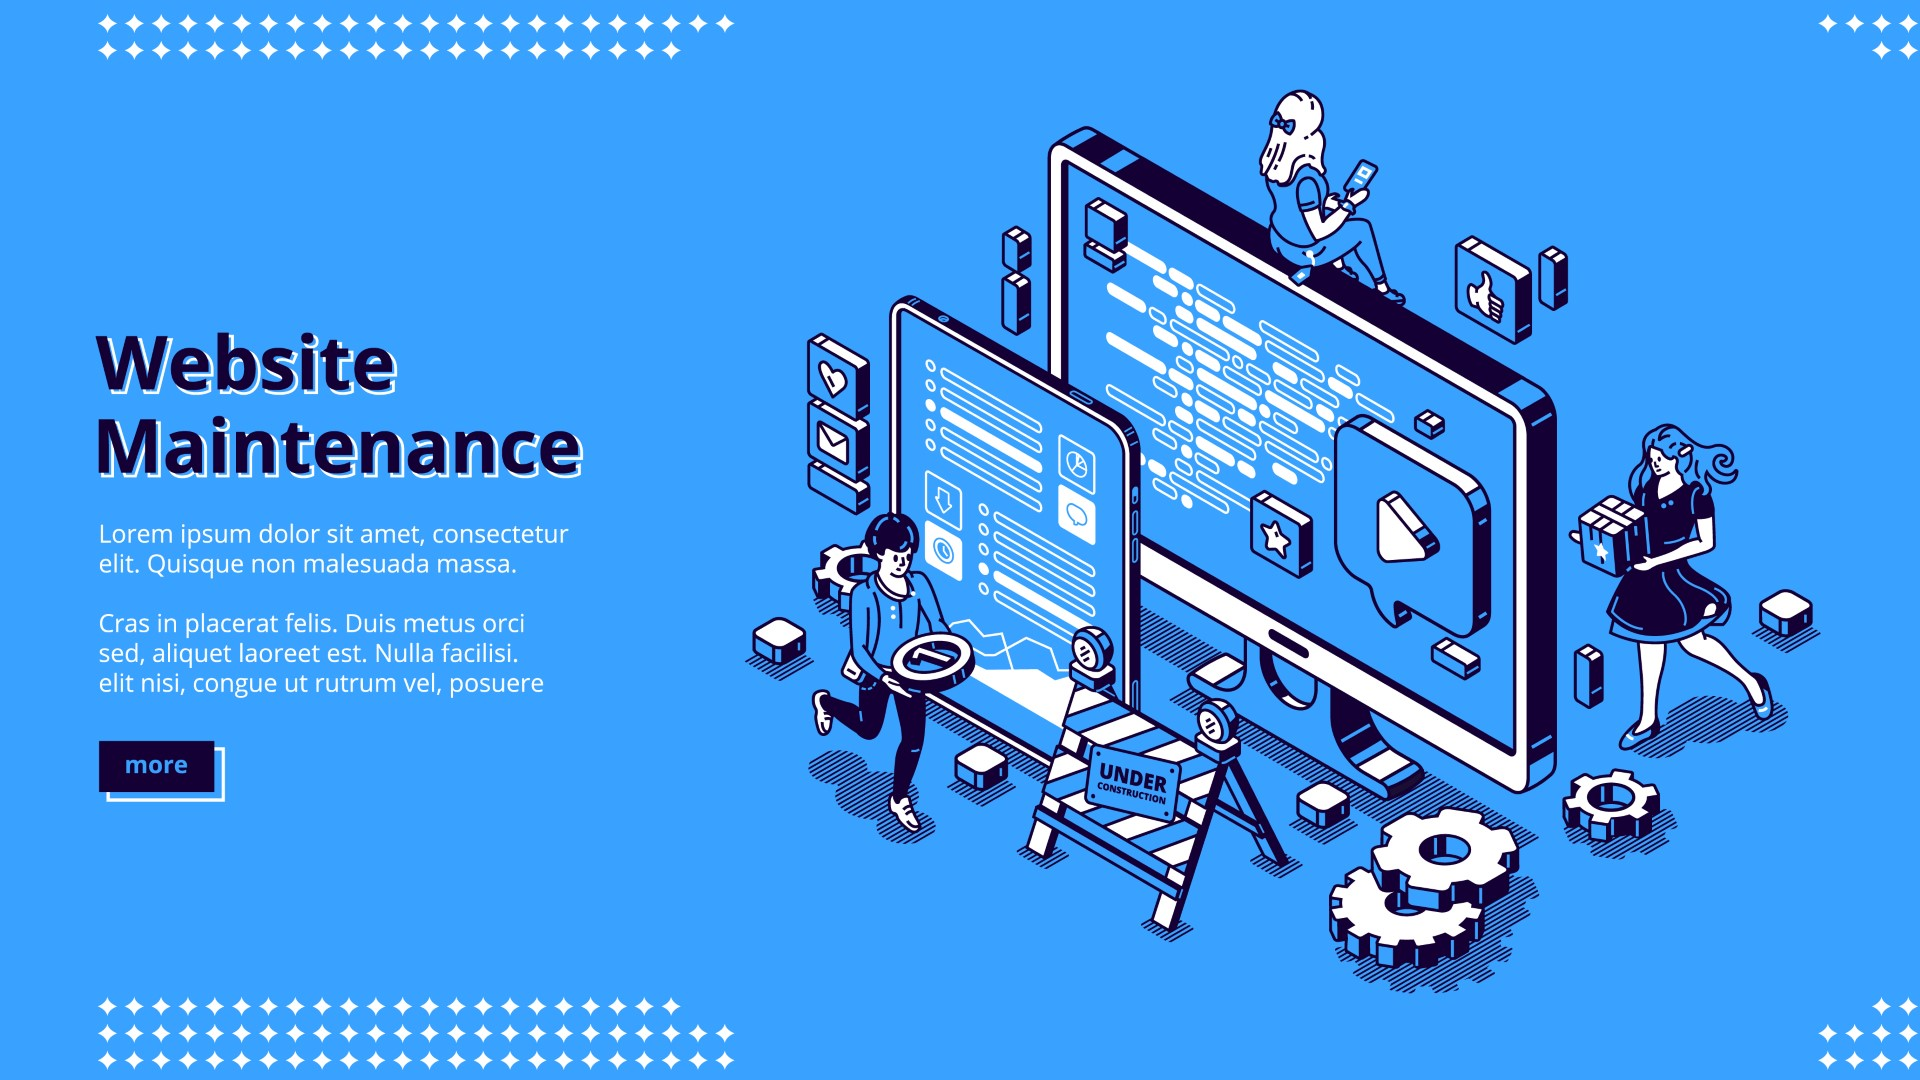 Vector banner of website maintenance